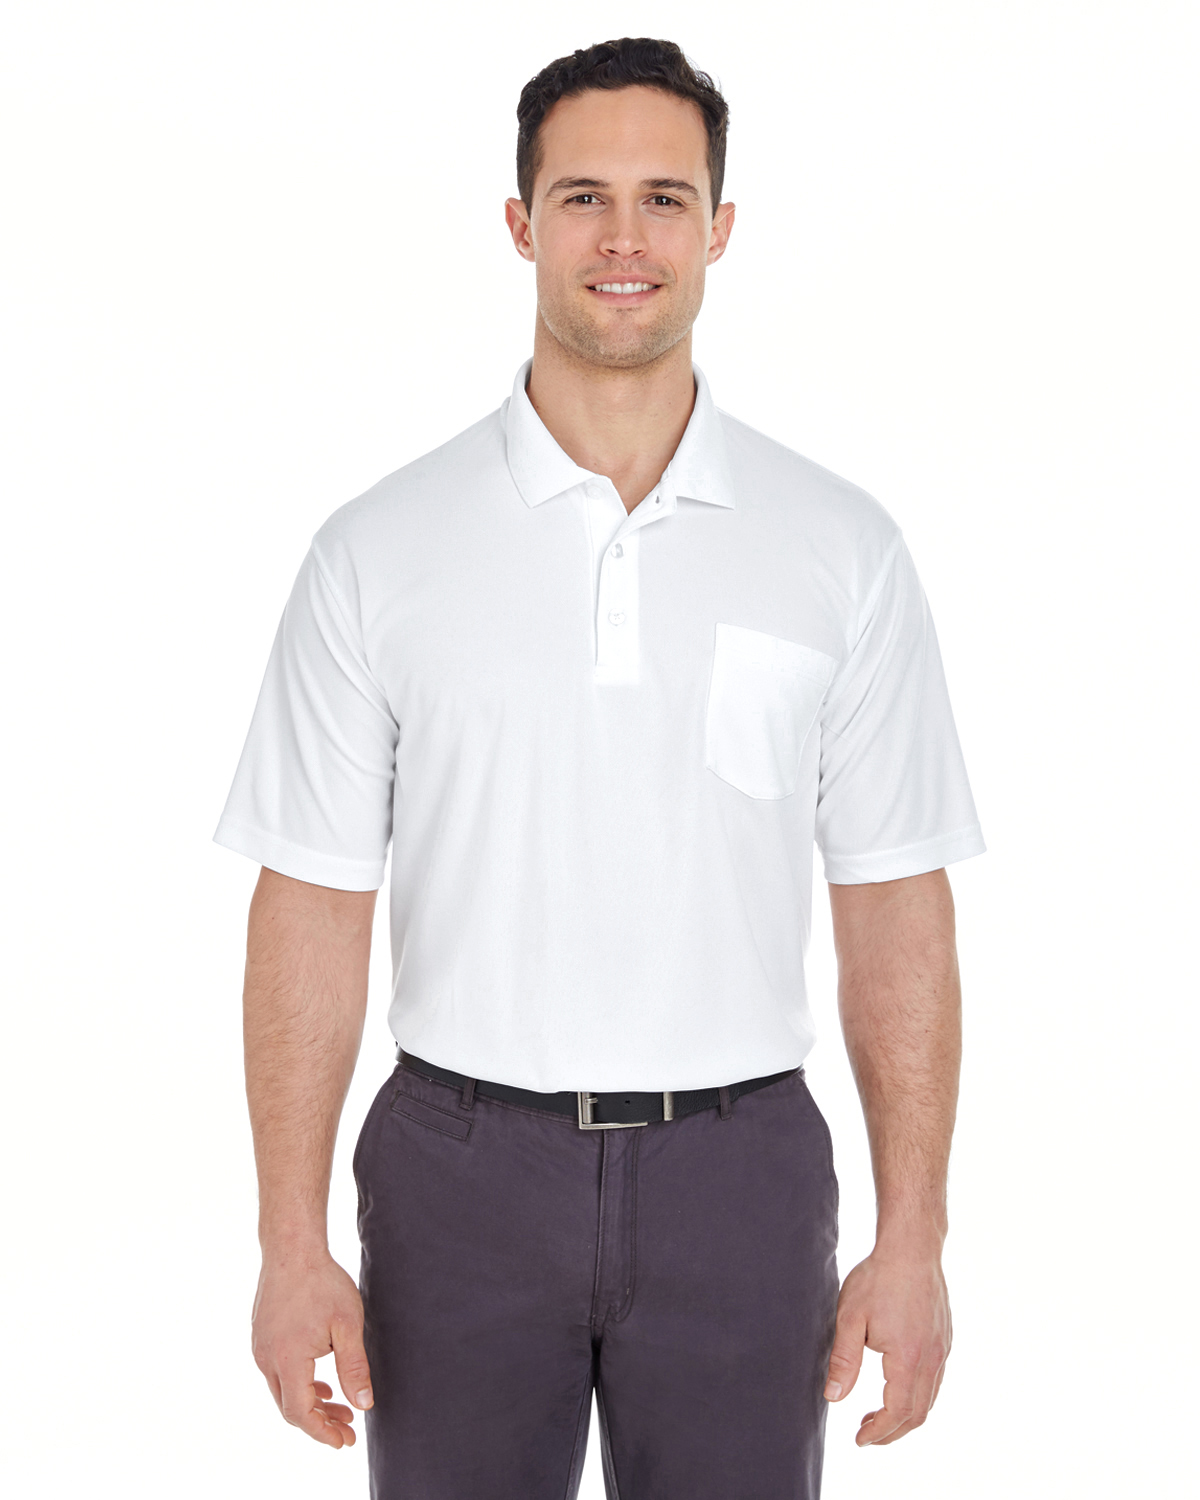 Ultra Club 8210P - Adult Cool & Dry Mesh Pique Polo with Pocket